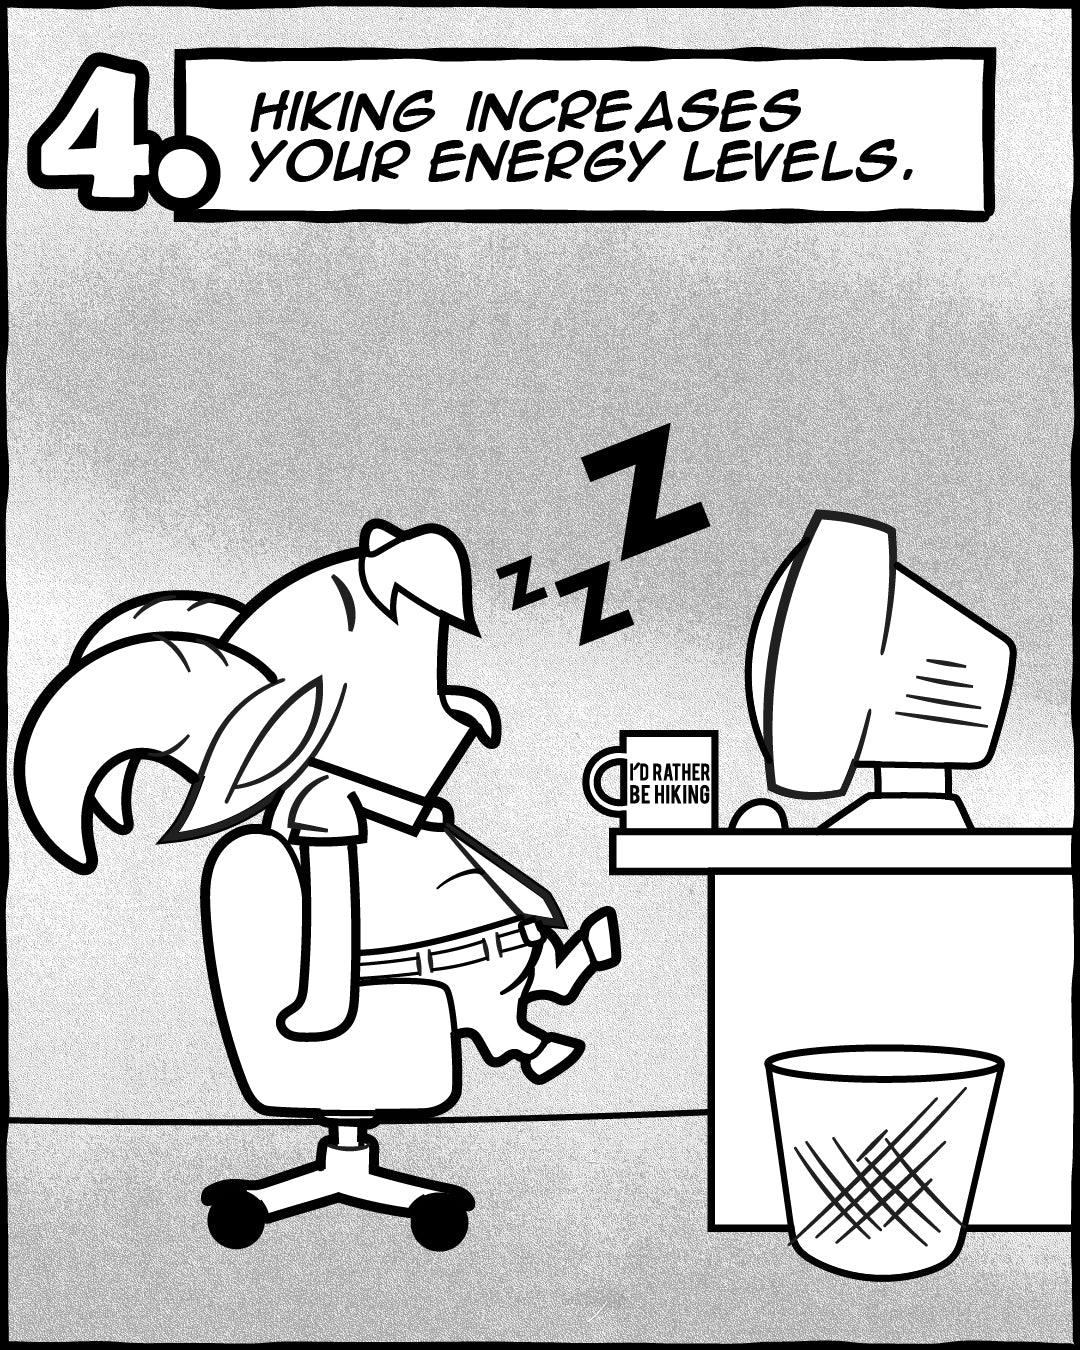 Hiking Increases Energy Levels - 5 Reasons Hiking Is Good For Your Soul, The Adventures Of Lambert Comic Series   TRVRS Outdoors